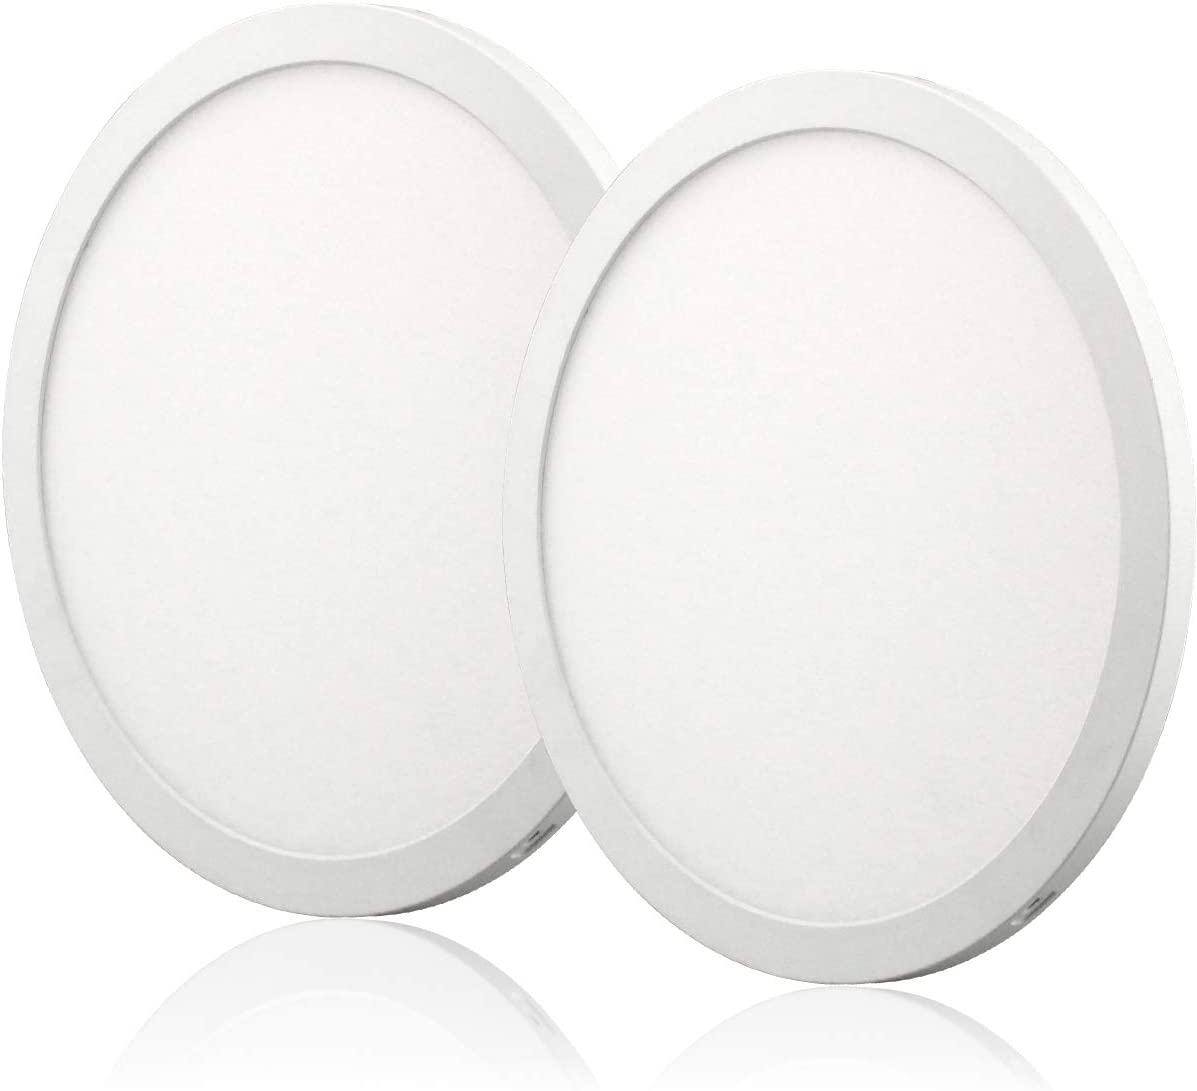 2PK 10inch LED Flush Mount Ceiling Light 24W 5000K CRI90 Dimmable Round Panel Light LED Recessed Light No Flicker for Closet Room, Stairs, Office, Basement